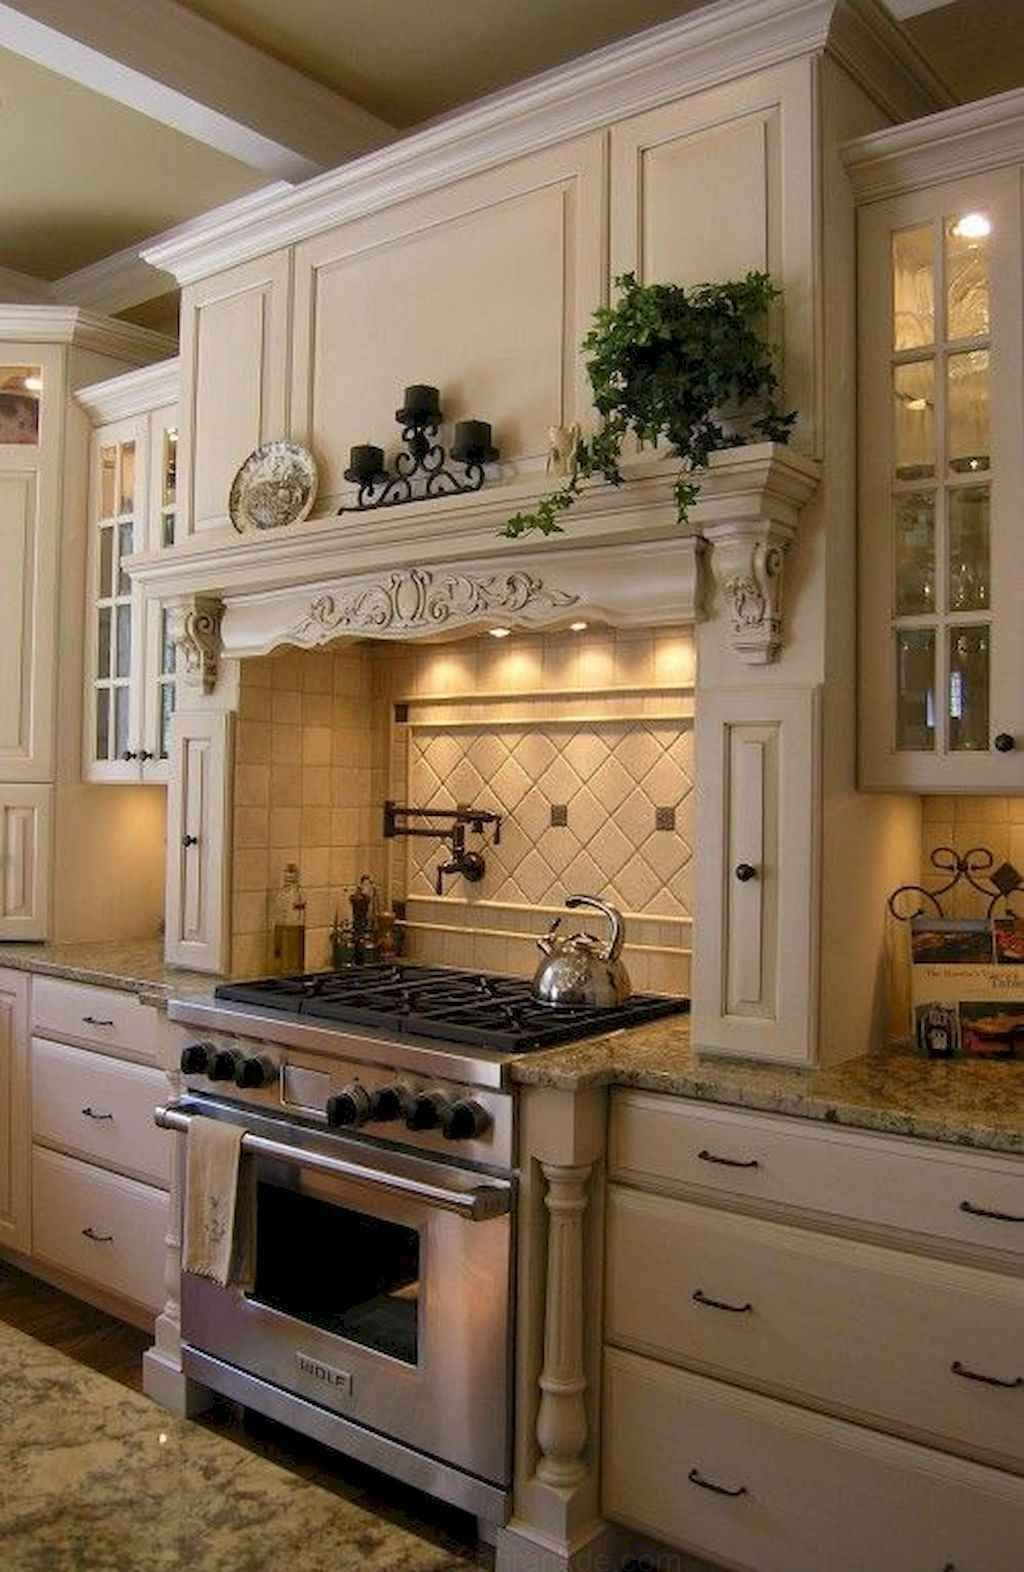 68 Simples Cuisine Francaise Decor Idees French Country Kitchens French Country Decorating Kitchen Country Kitchen Designs